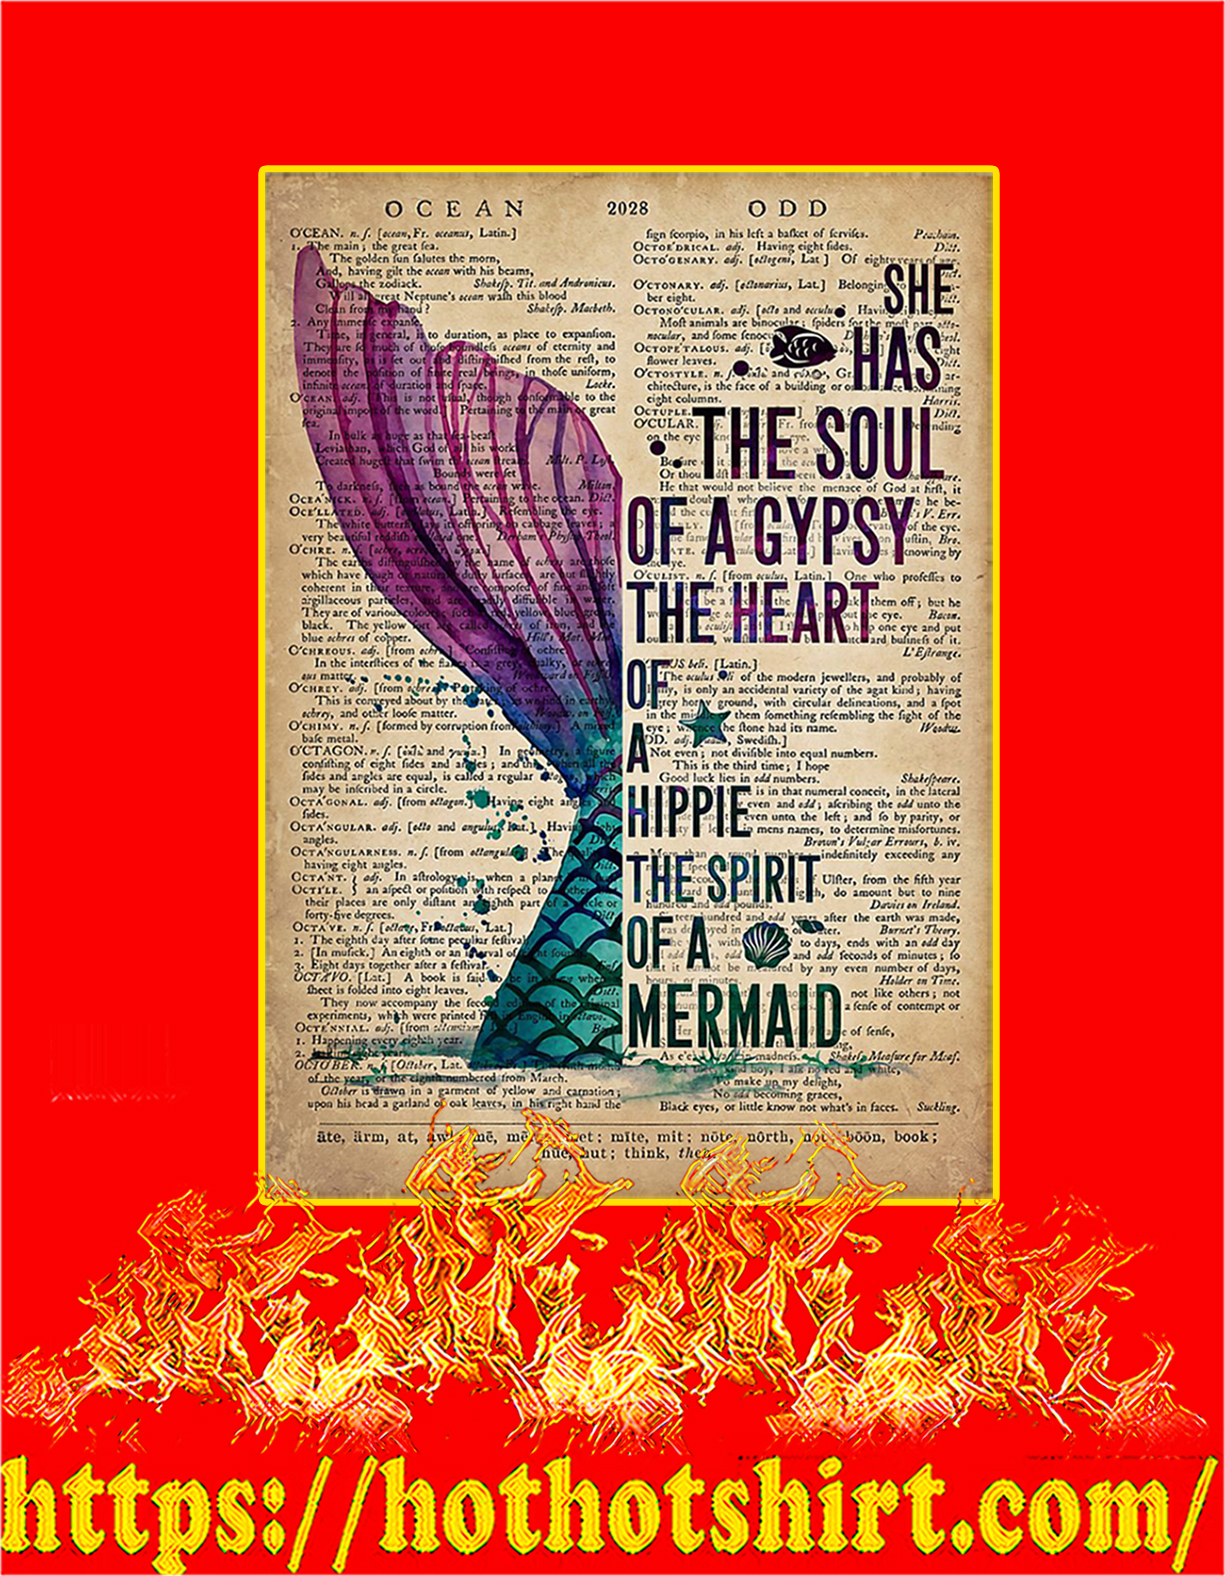 Mermaid She has the soul of a gypsy poster - A4